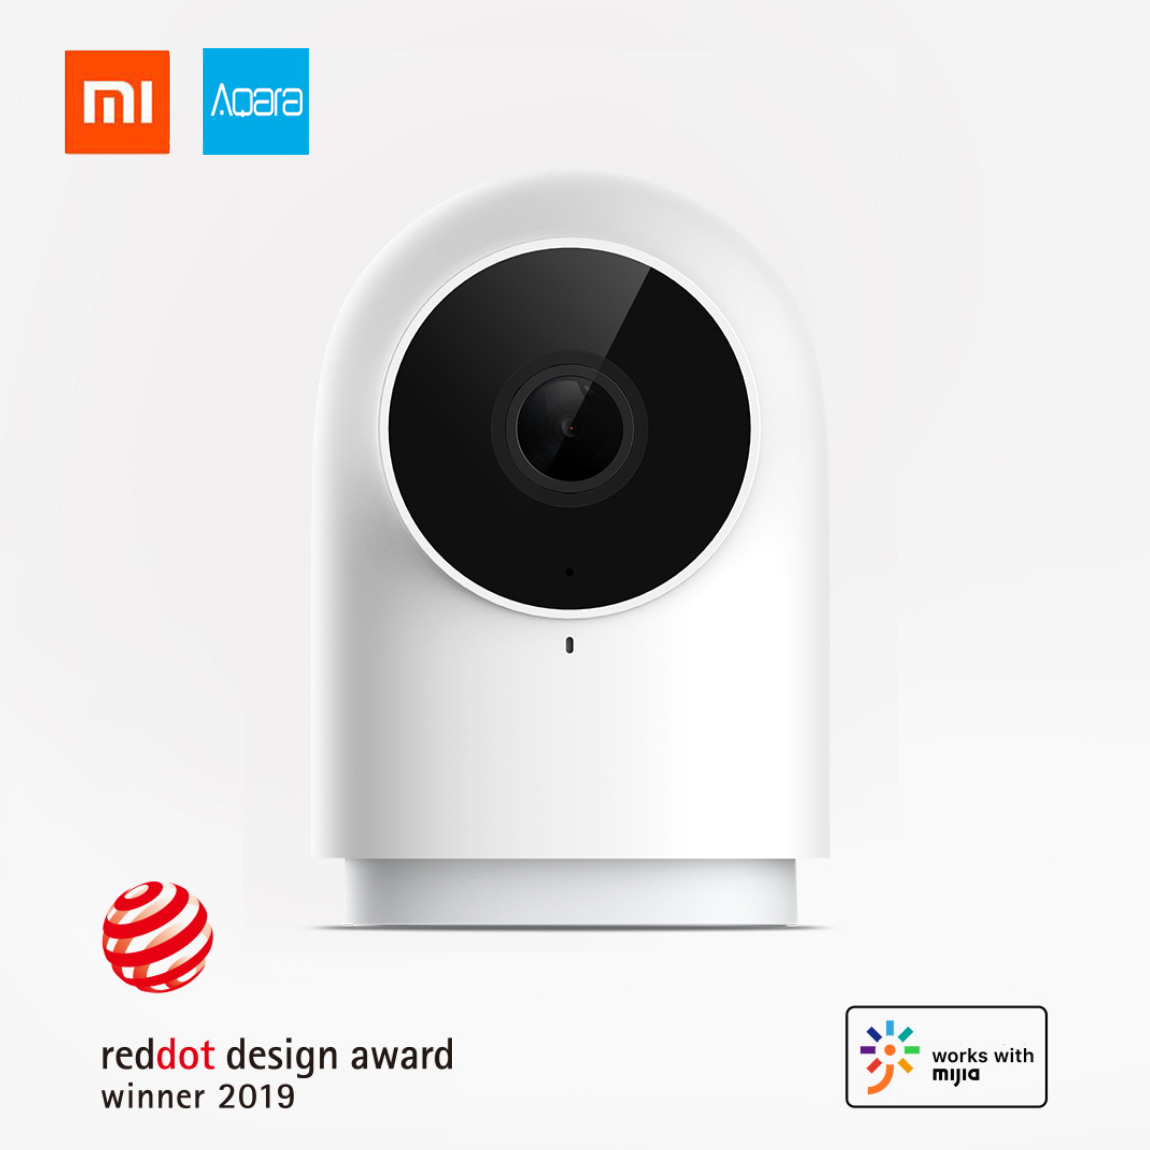 Xiaomi Aqara G2 Camera Smart IP Gateway Hub Zigbee Gateway Edition 1080P AI Recognition Smart APP Remote Control Home SecurityXiaomi Aqara G2 Camera Smart IP Gateway Hub Zigbee Gateway Edition 1080P AI Recognition Smart APP Remote Control Home Security